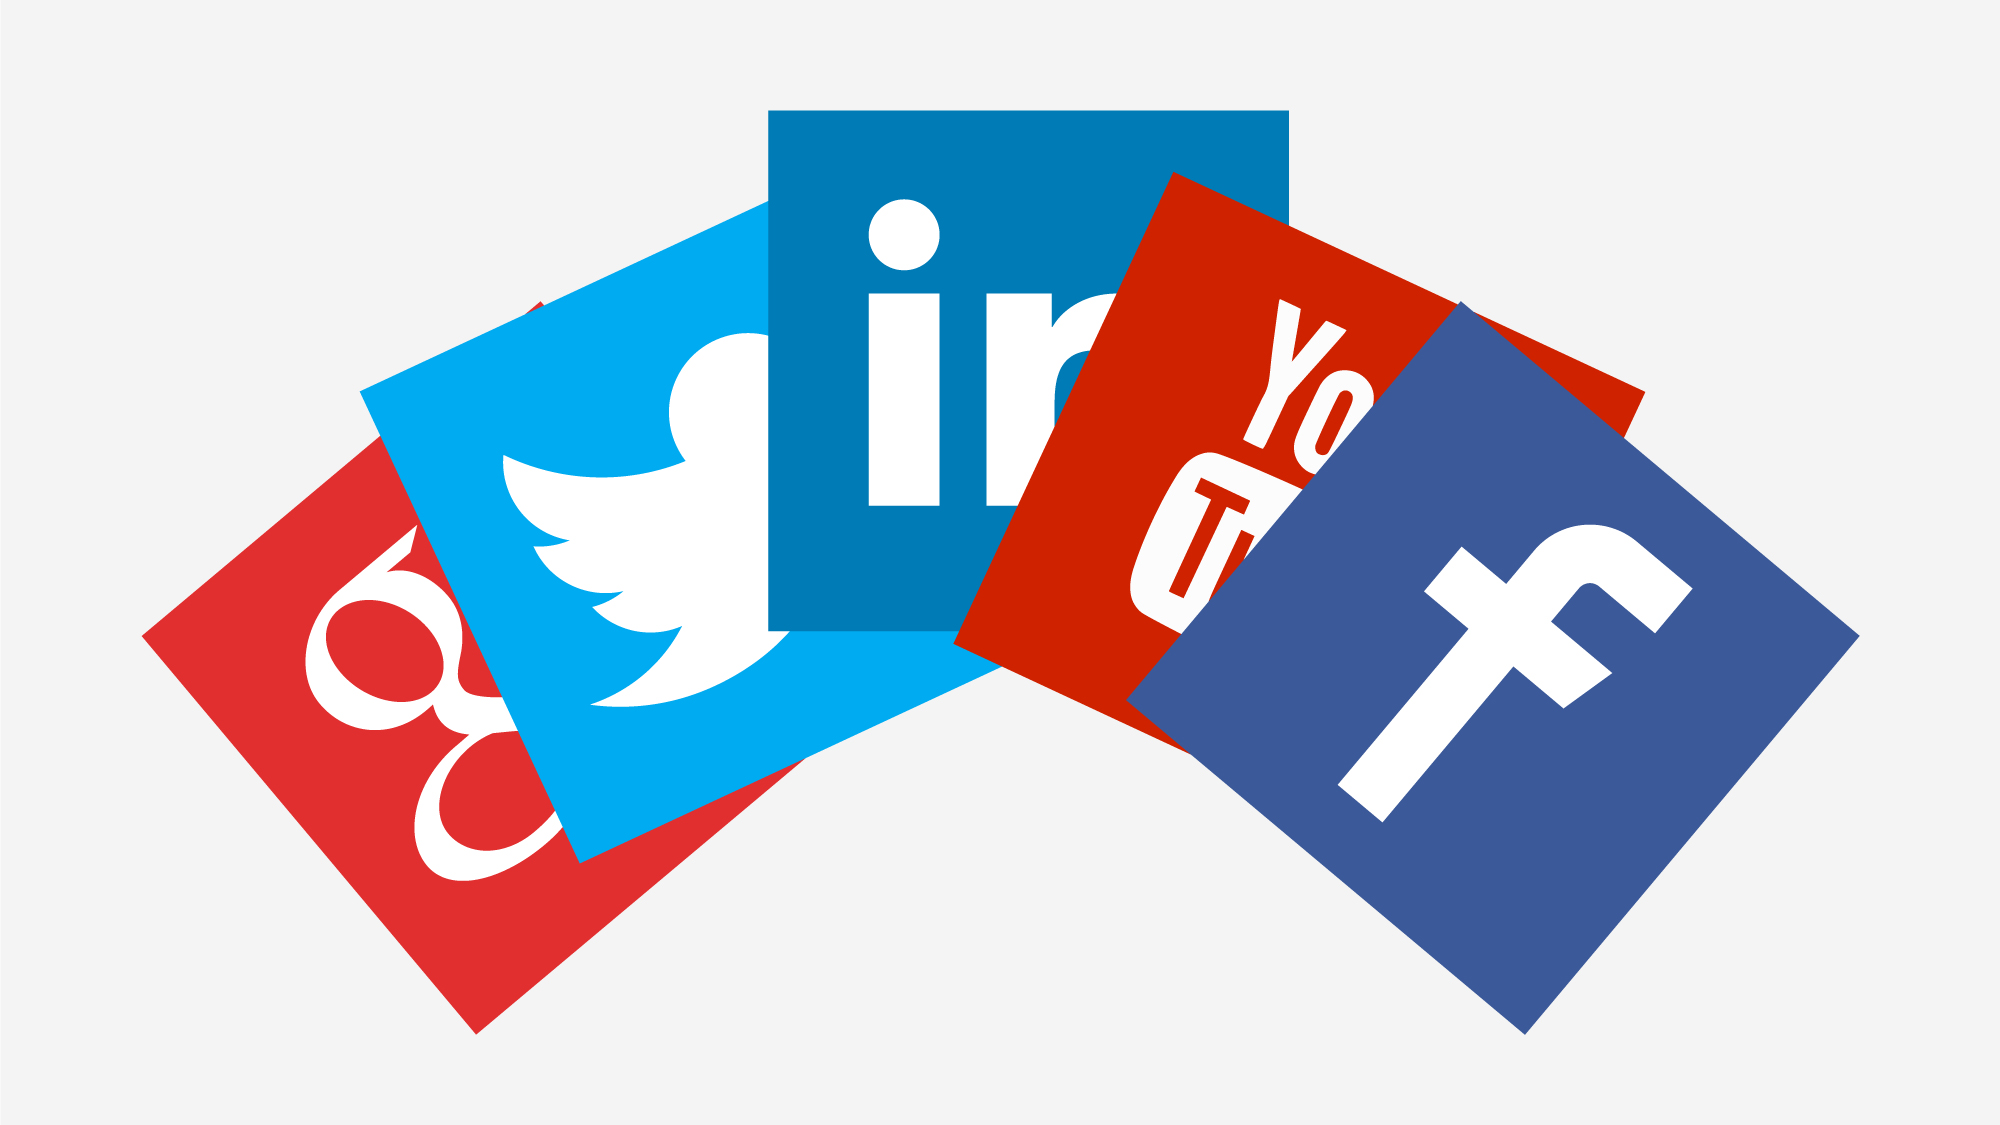 What will be the role of social media in Internet marketing in 2017?